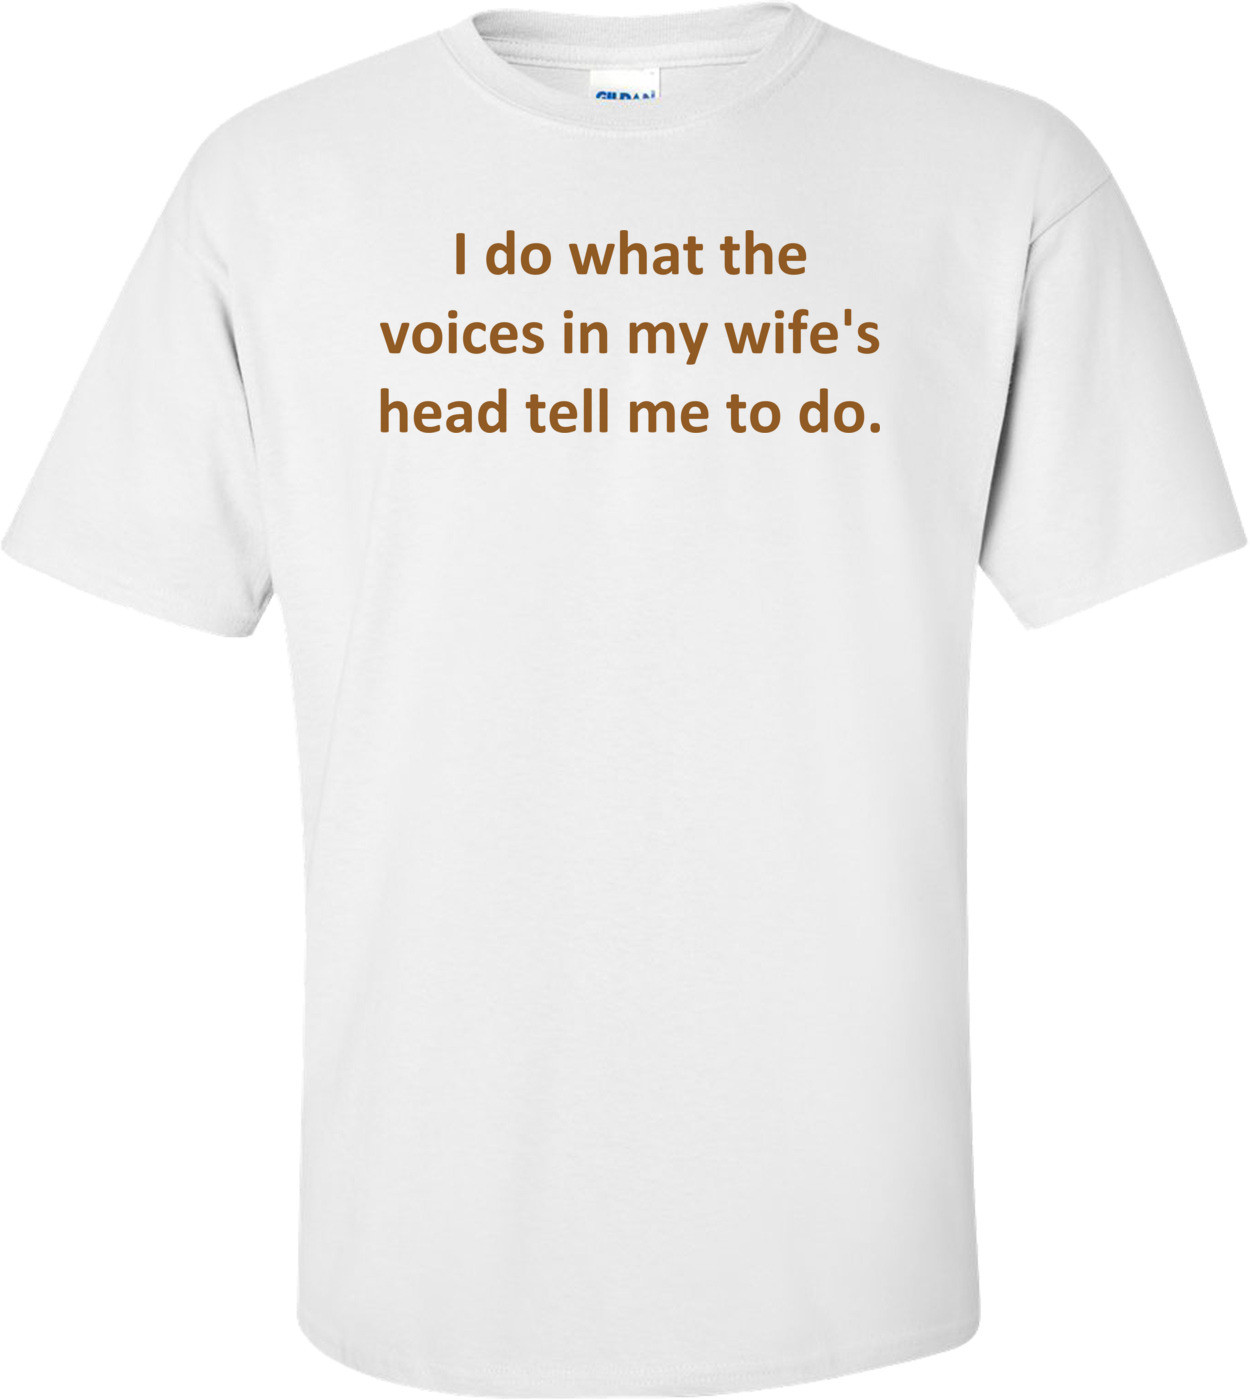 I do what the voices in my wife's head tell me to do. Shirt